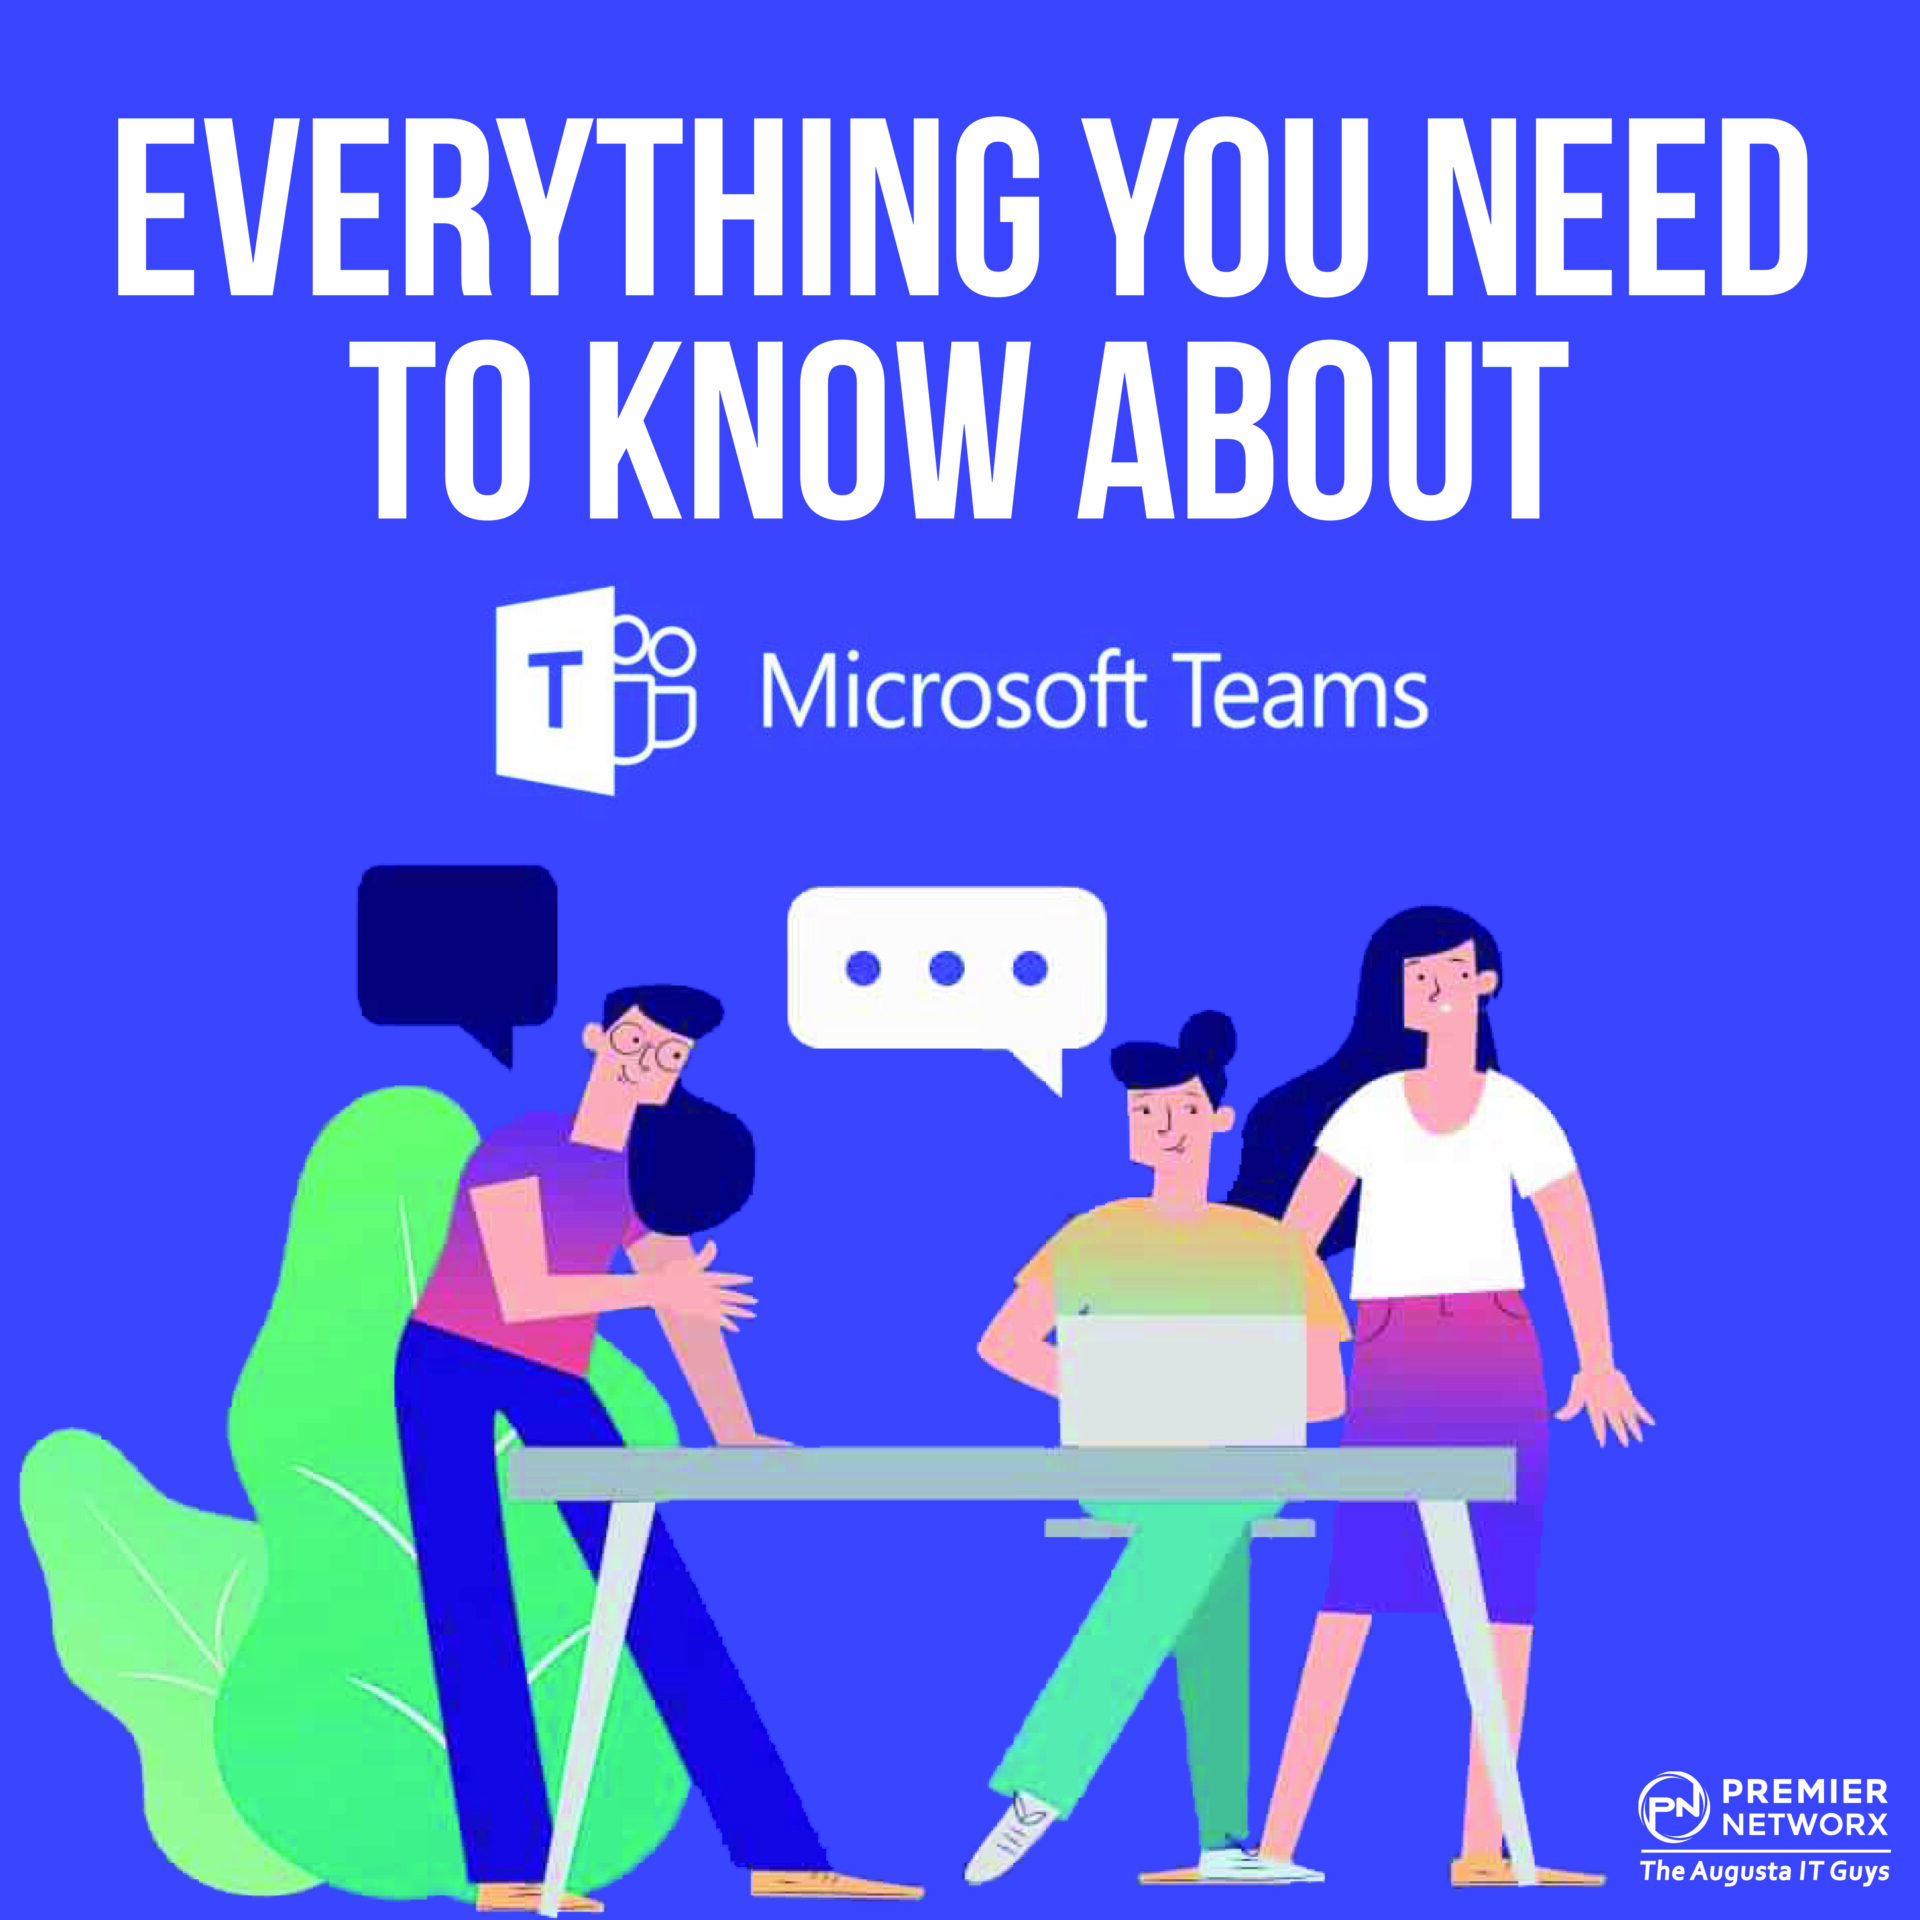 Premier Networx Microsoft Teams Office 365